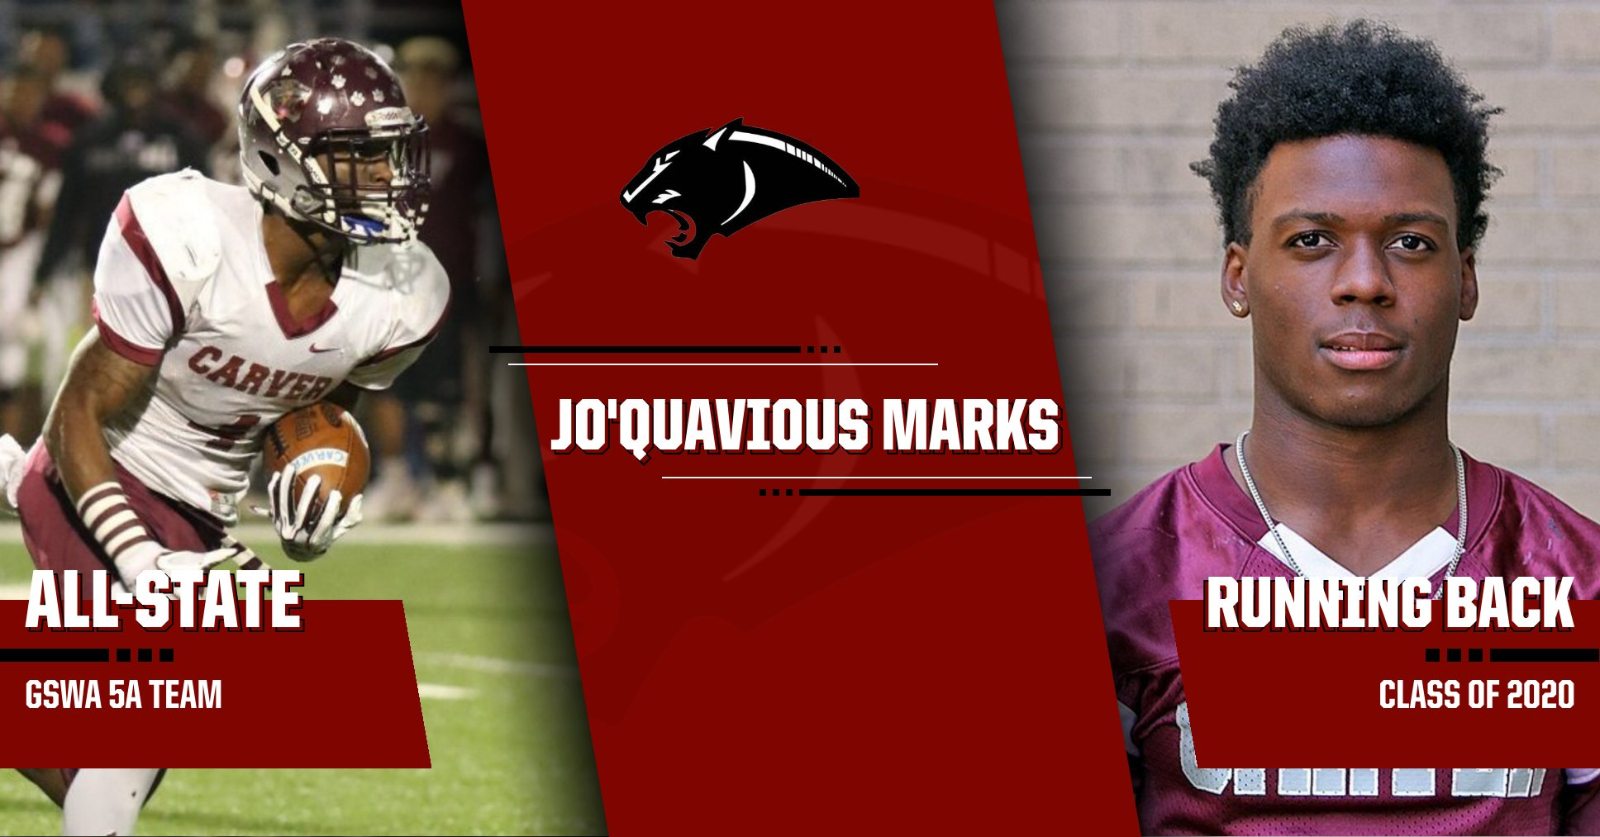 GSWA Honors Jo'Quavious Marks